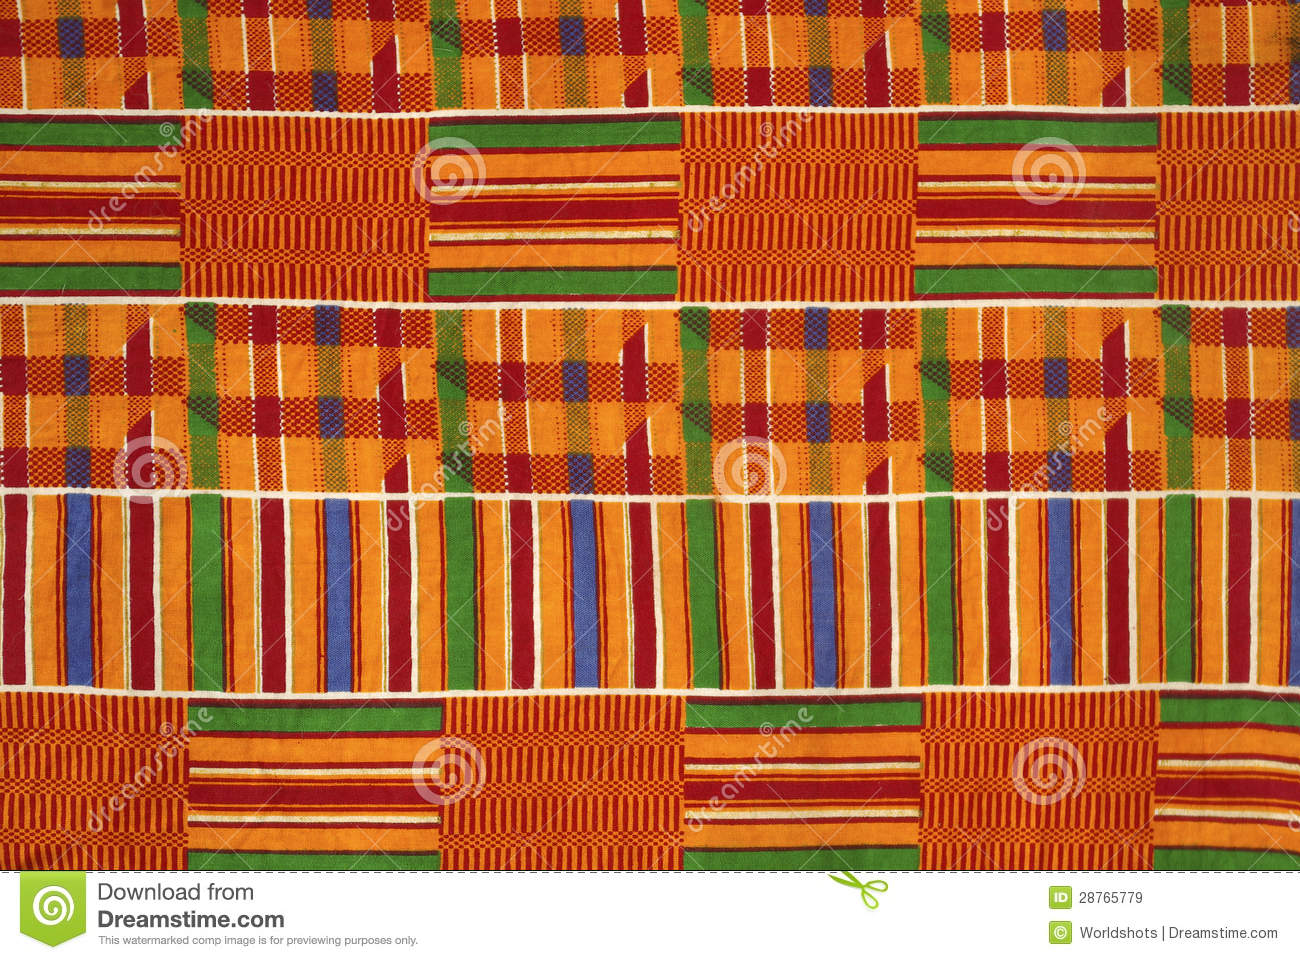 Kente cloth clipart 3 » Clipart Station.